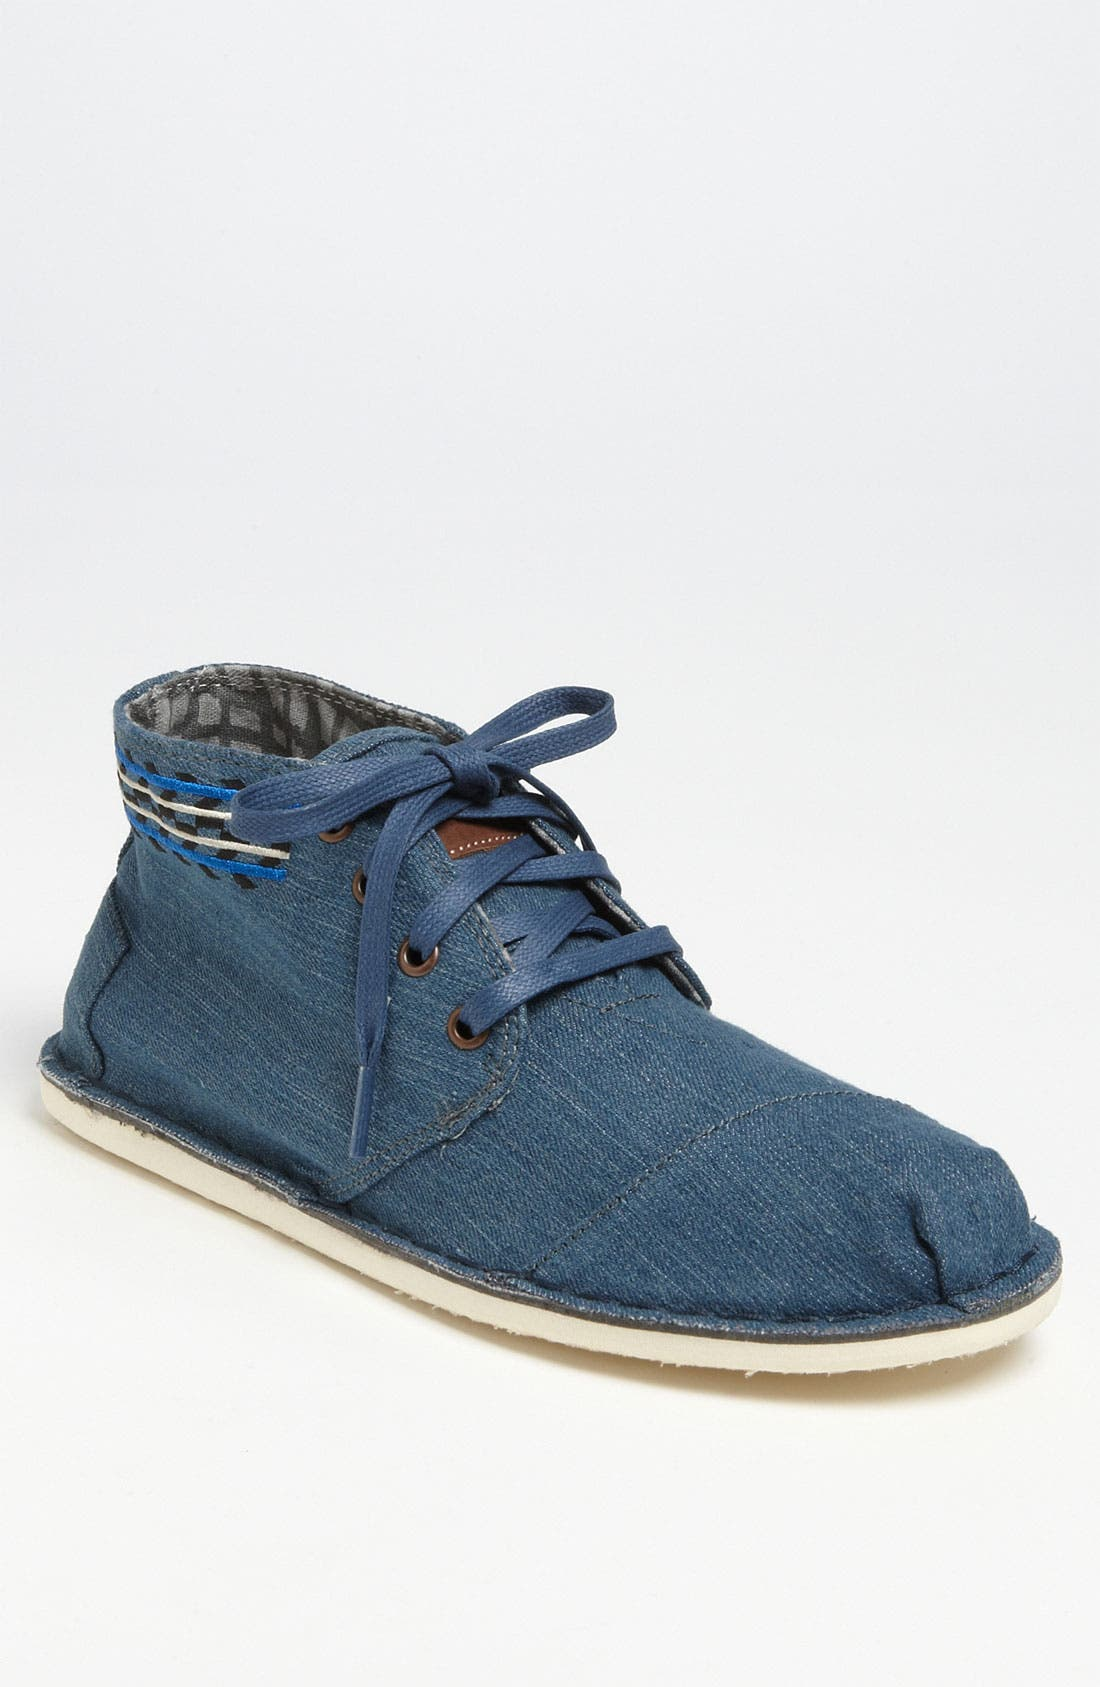 Alternate Image 1 Selected - TOMS 'Botas Desert - Alarco' Boot (Men)